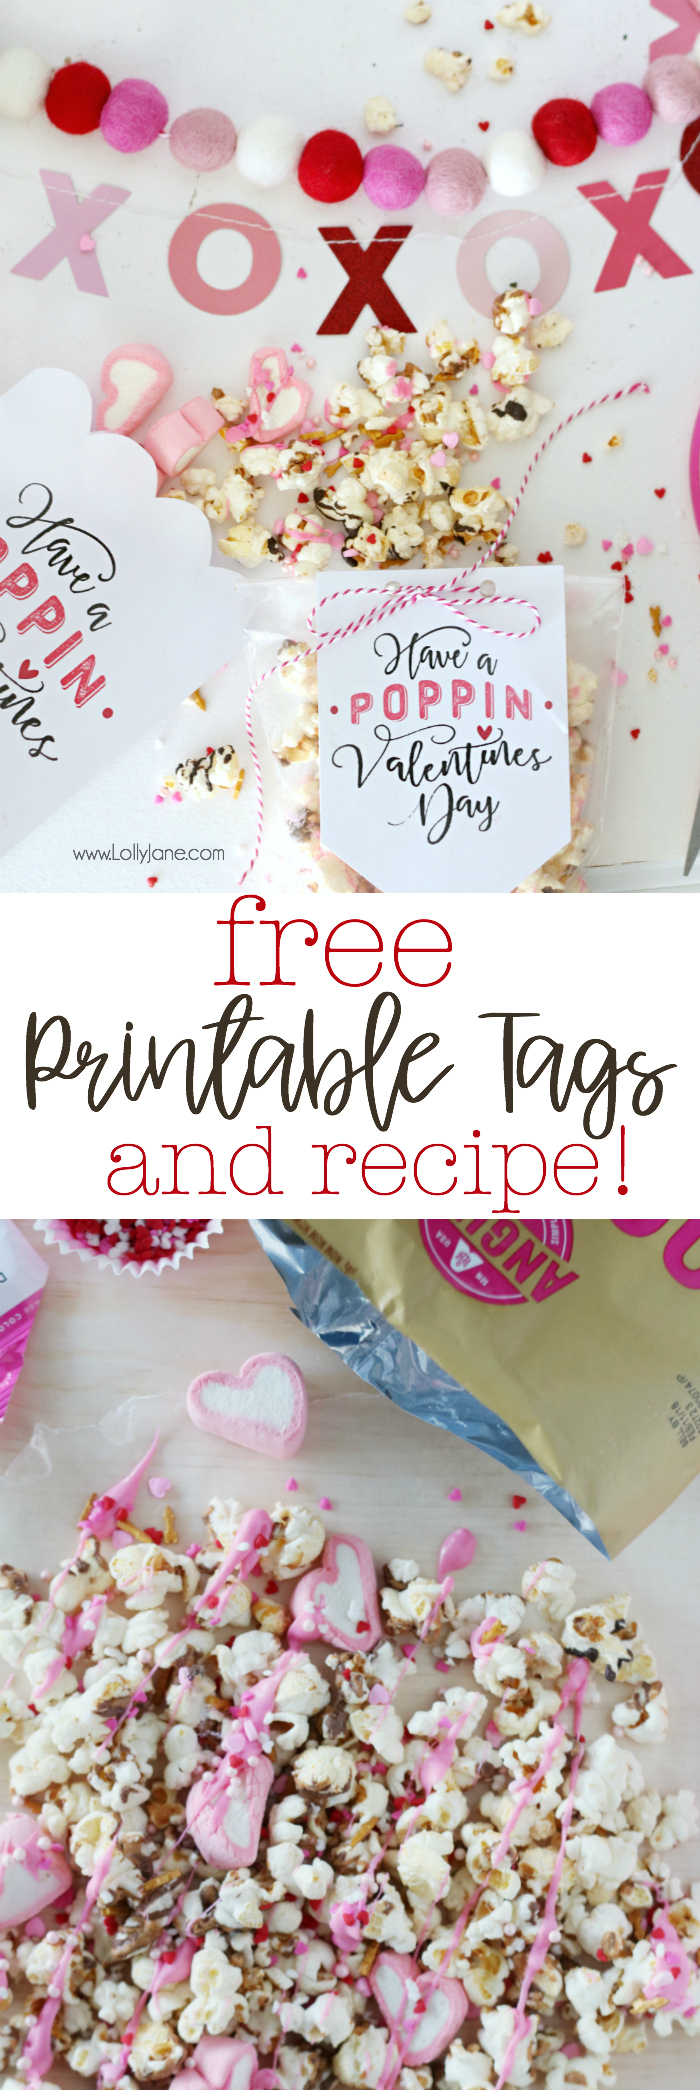 "Free Printable ""Have a Poppin' Valentine's Day"" tags and yummy (EASY!) recipe!"